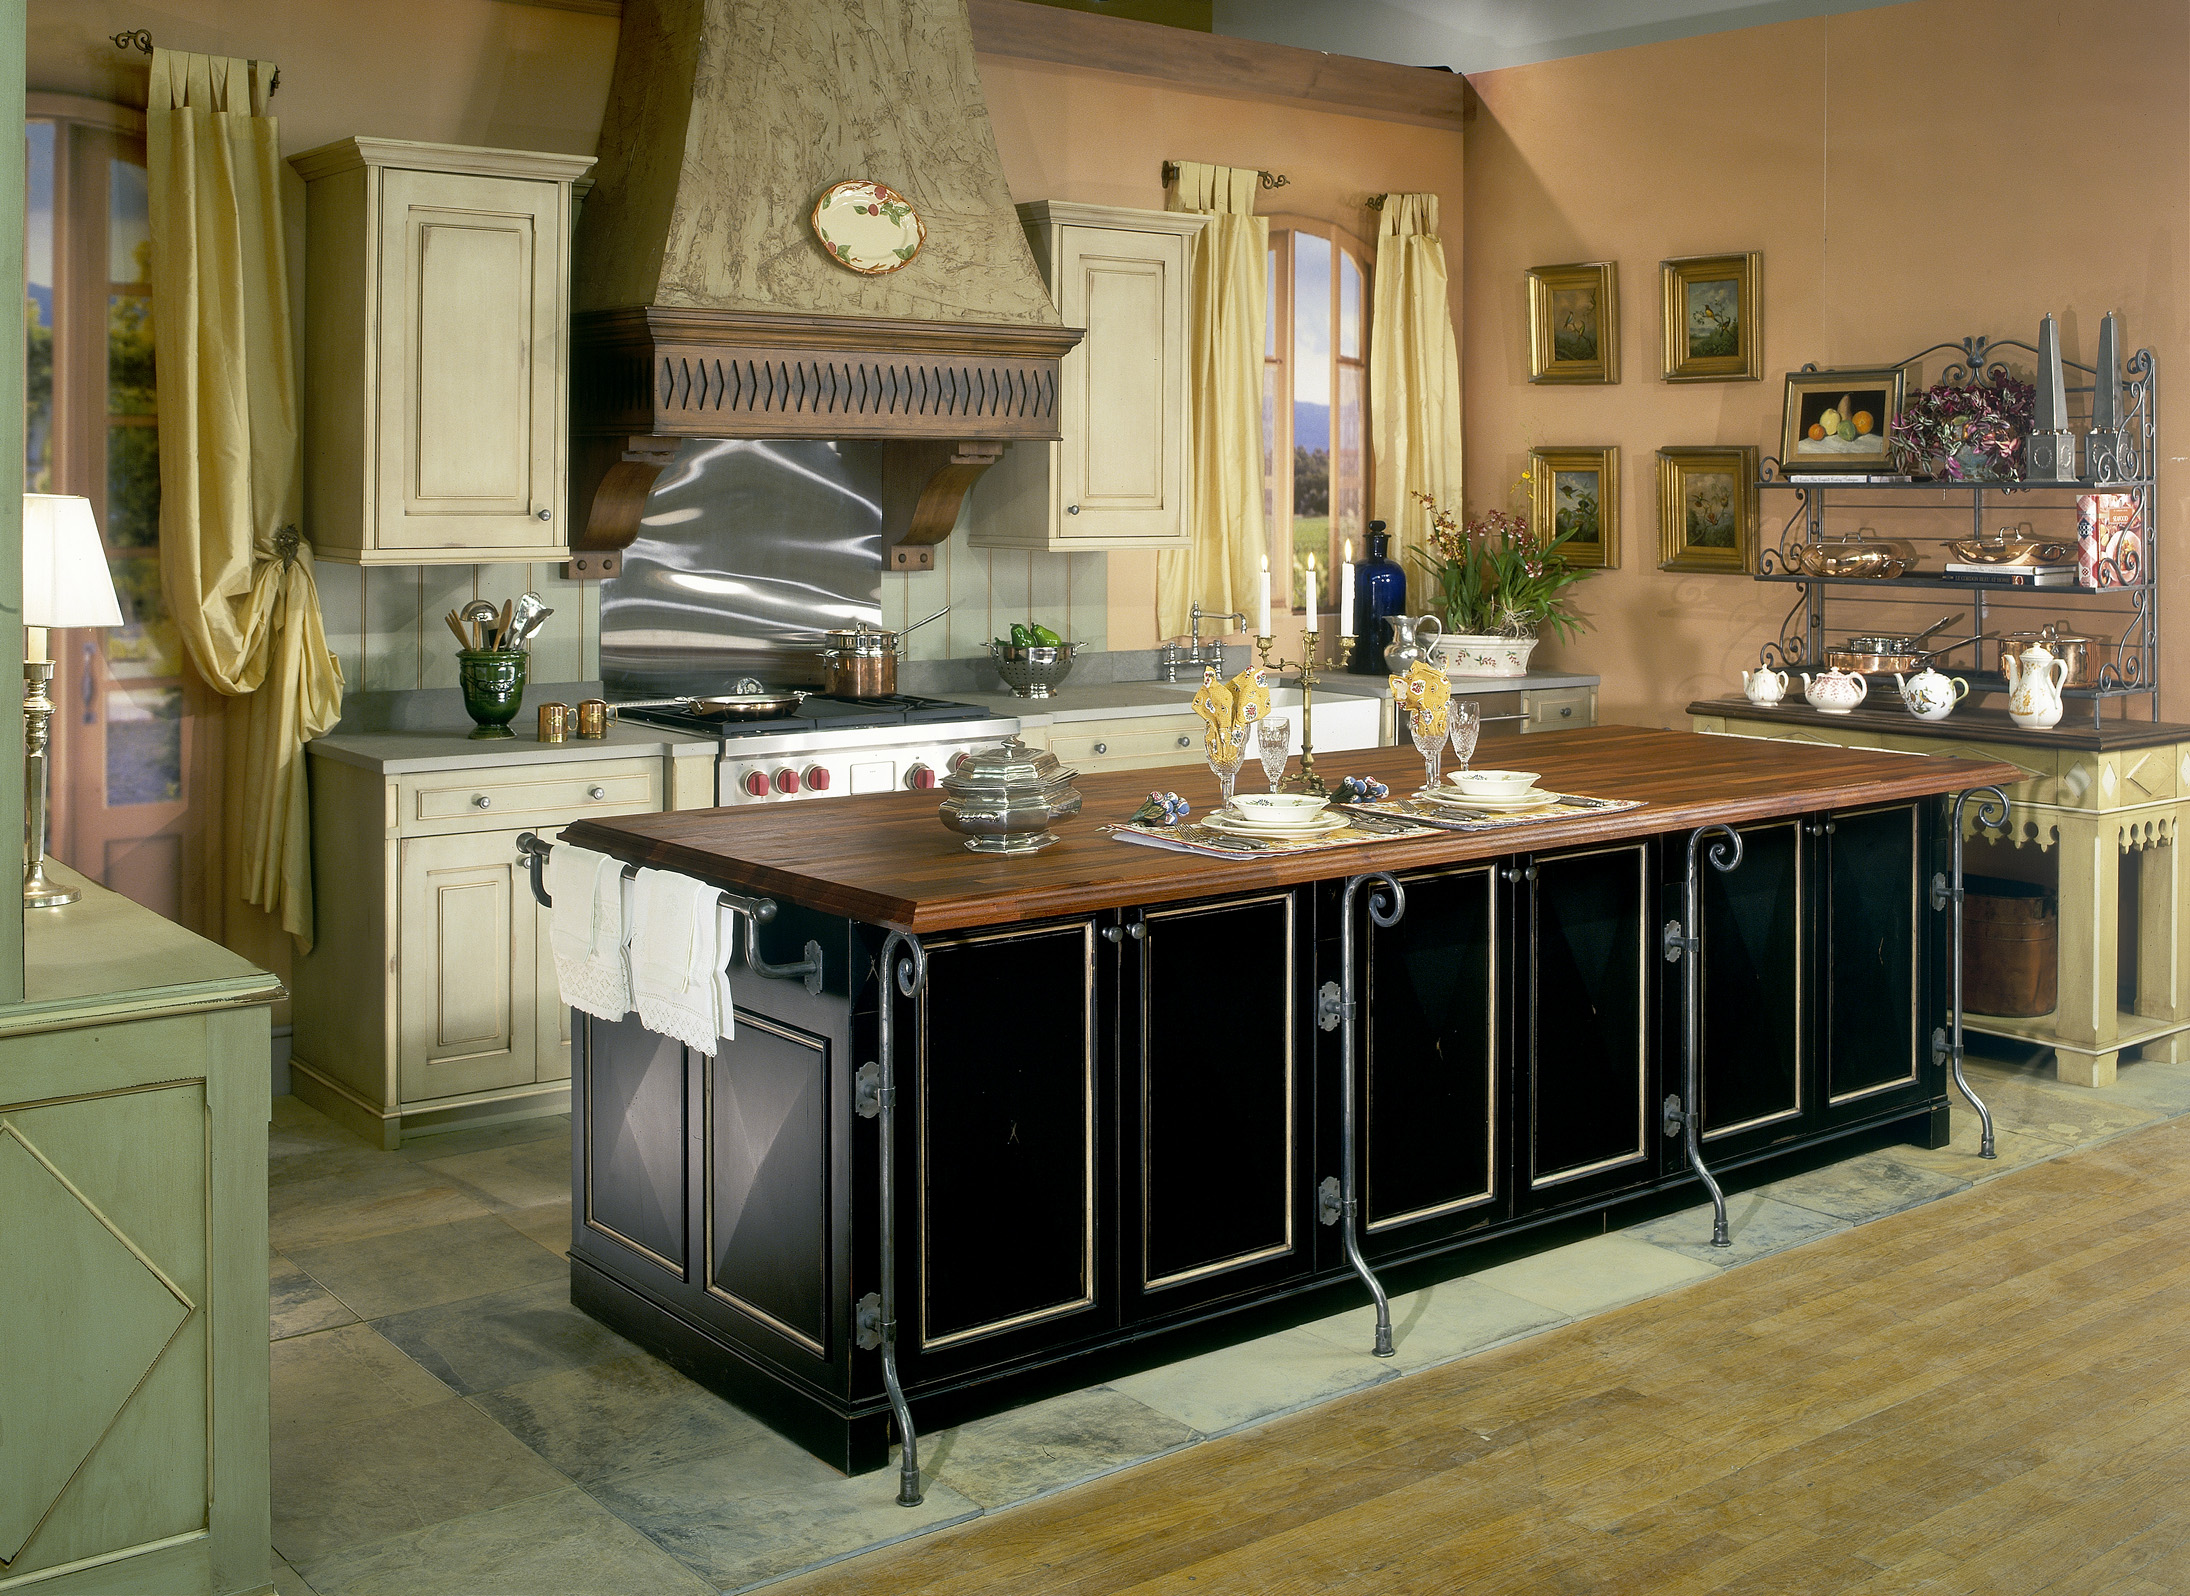 Featured Image of Rustic Kitchen With Modern Cabinet